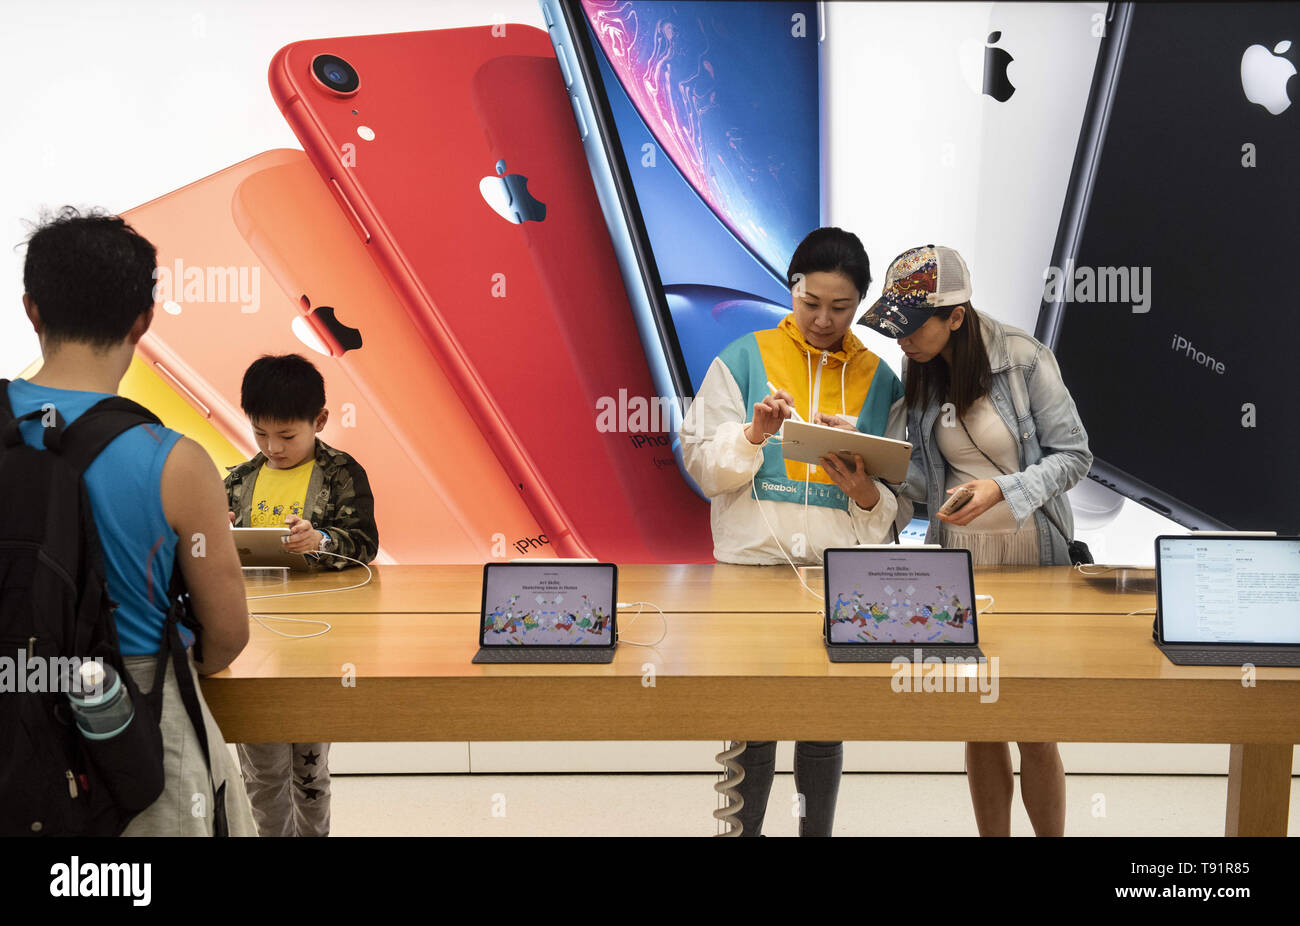 Hong Kong, China. 9th May, 2019. Buyers seen using ipad products at an American multinational technology company Apple store in Hong Kong. Credit: Budrul Chukrut/SOPA Images/ZUMA Wire/Alamy Live News - Stock Image